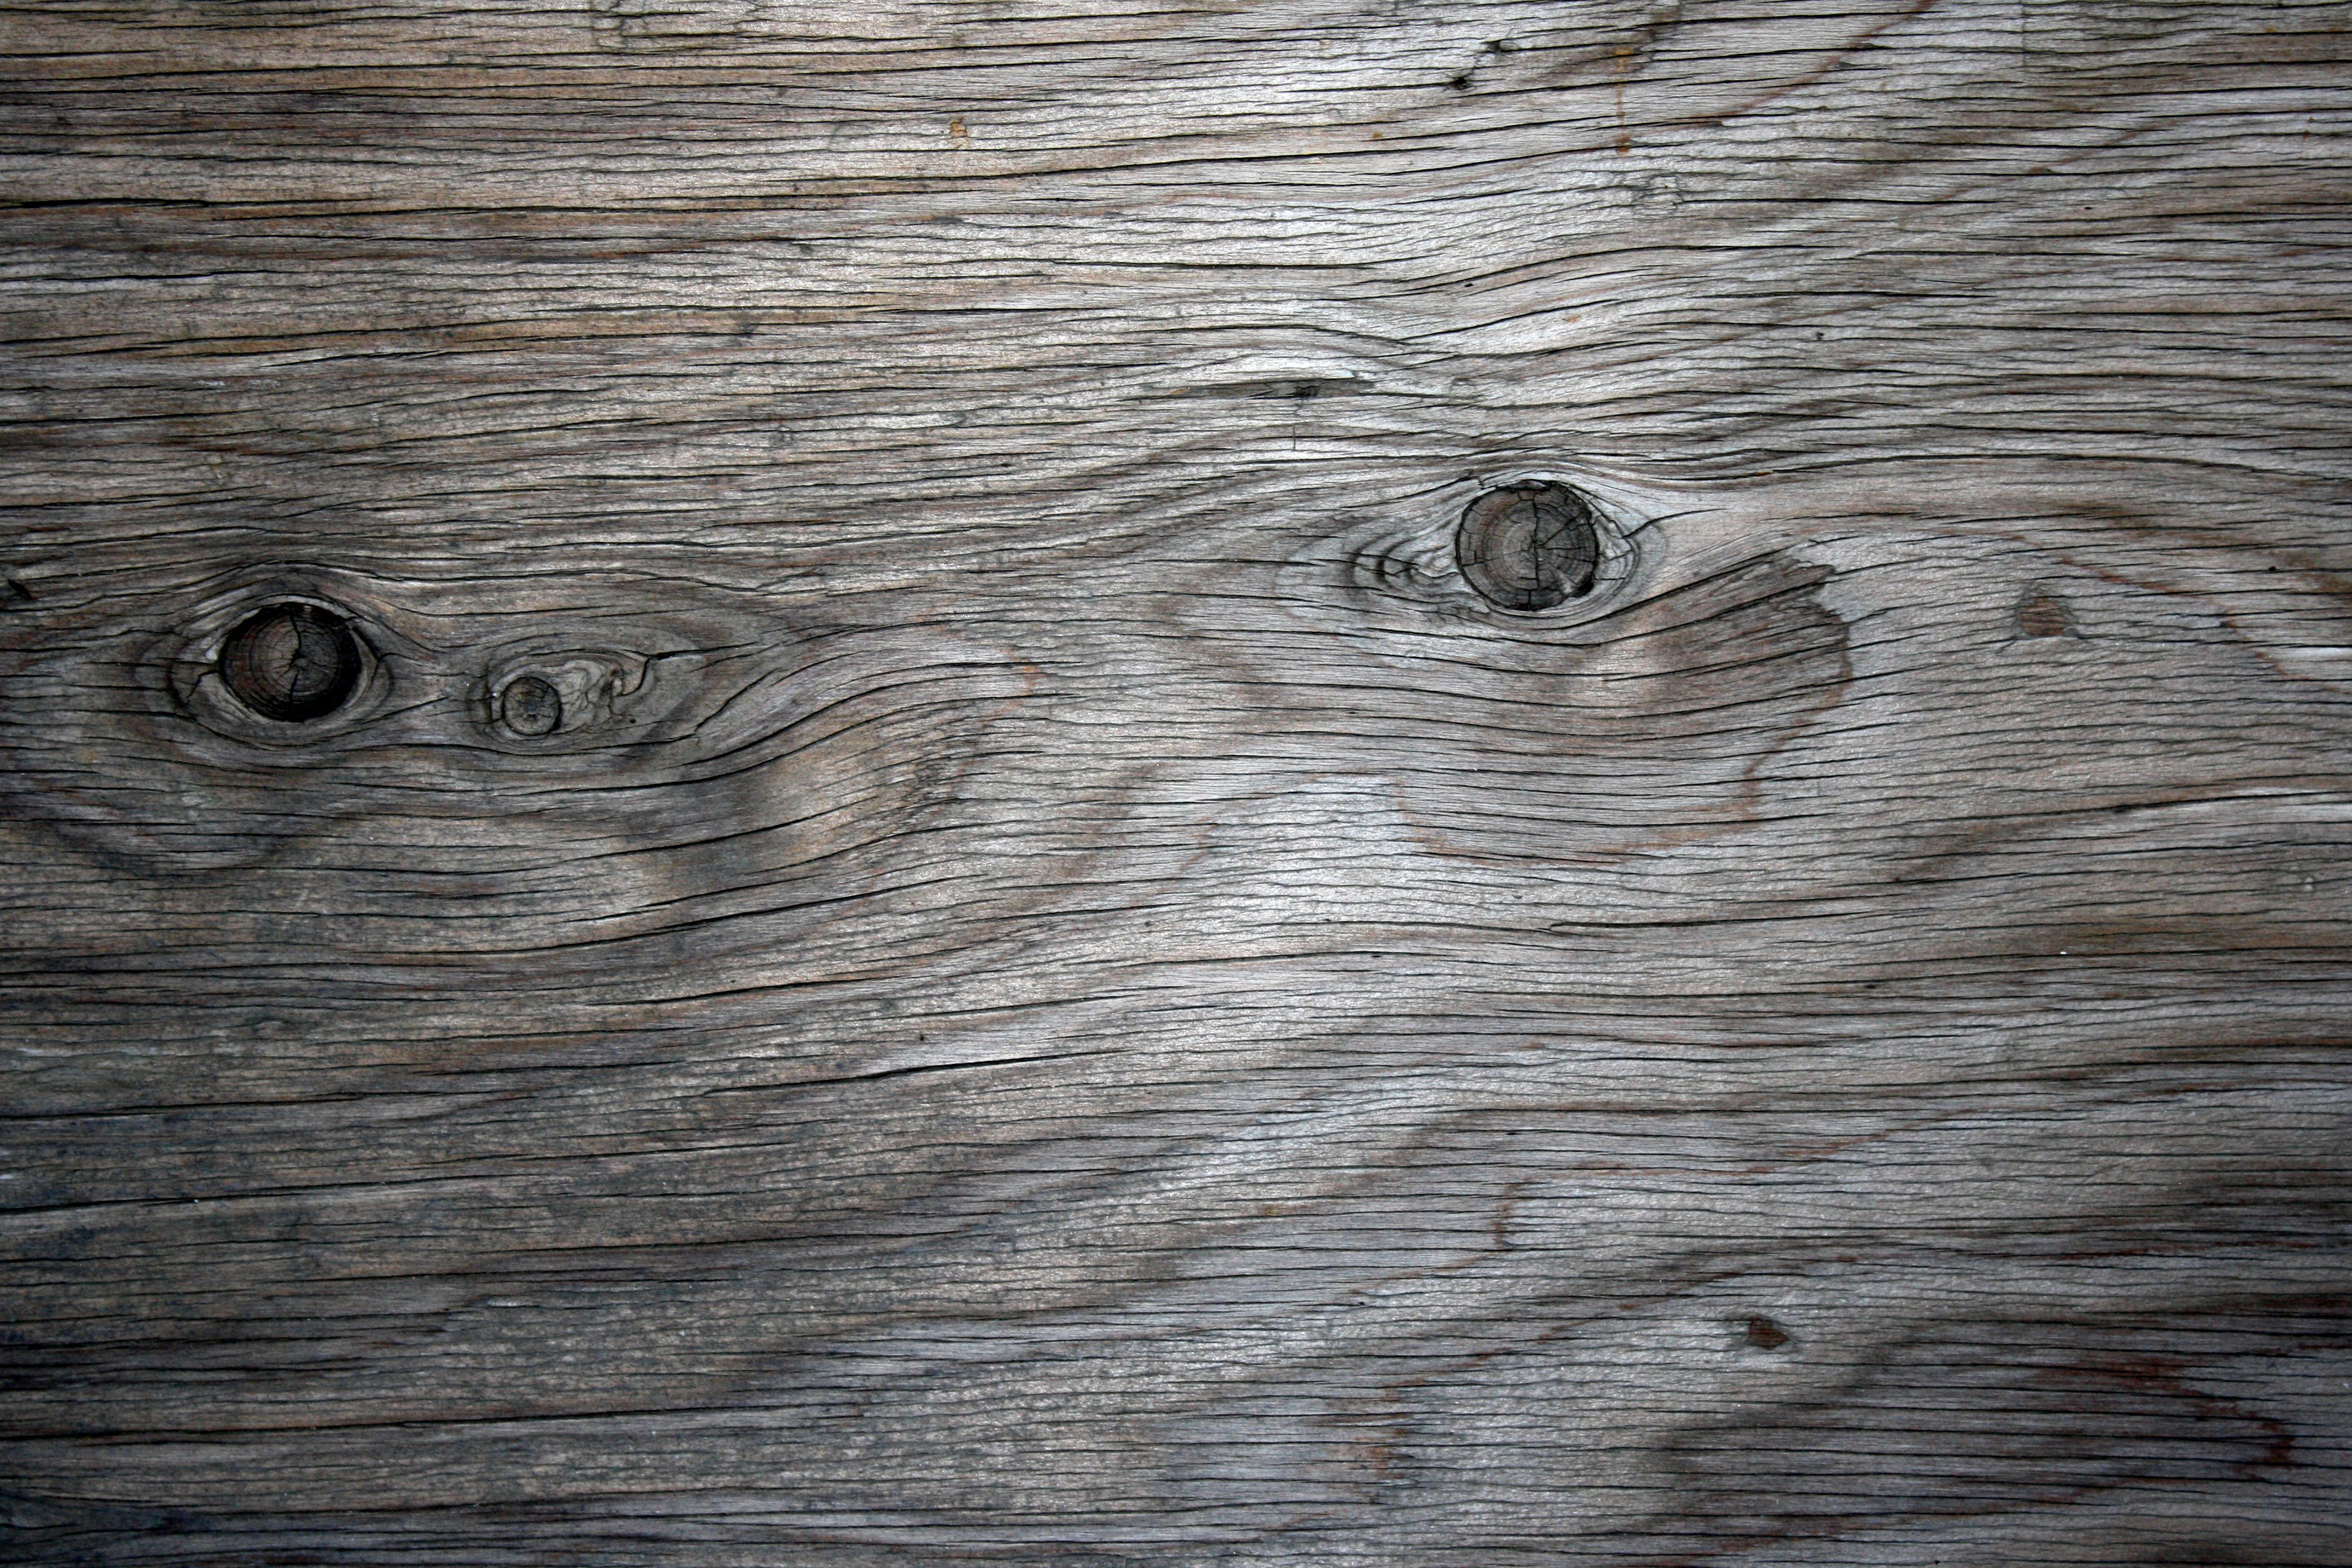 weathered wood grain texturejpg 3888x2592